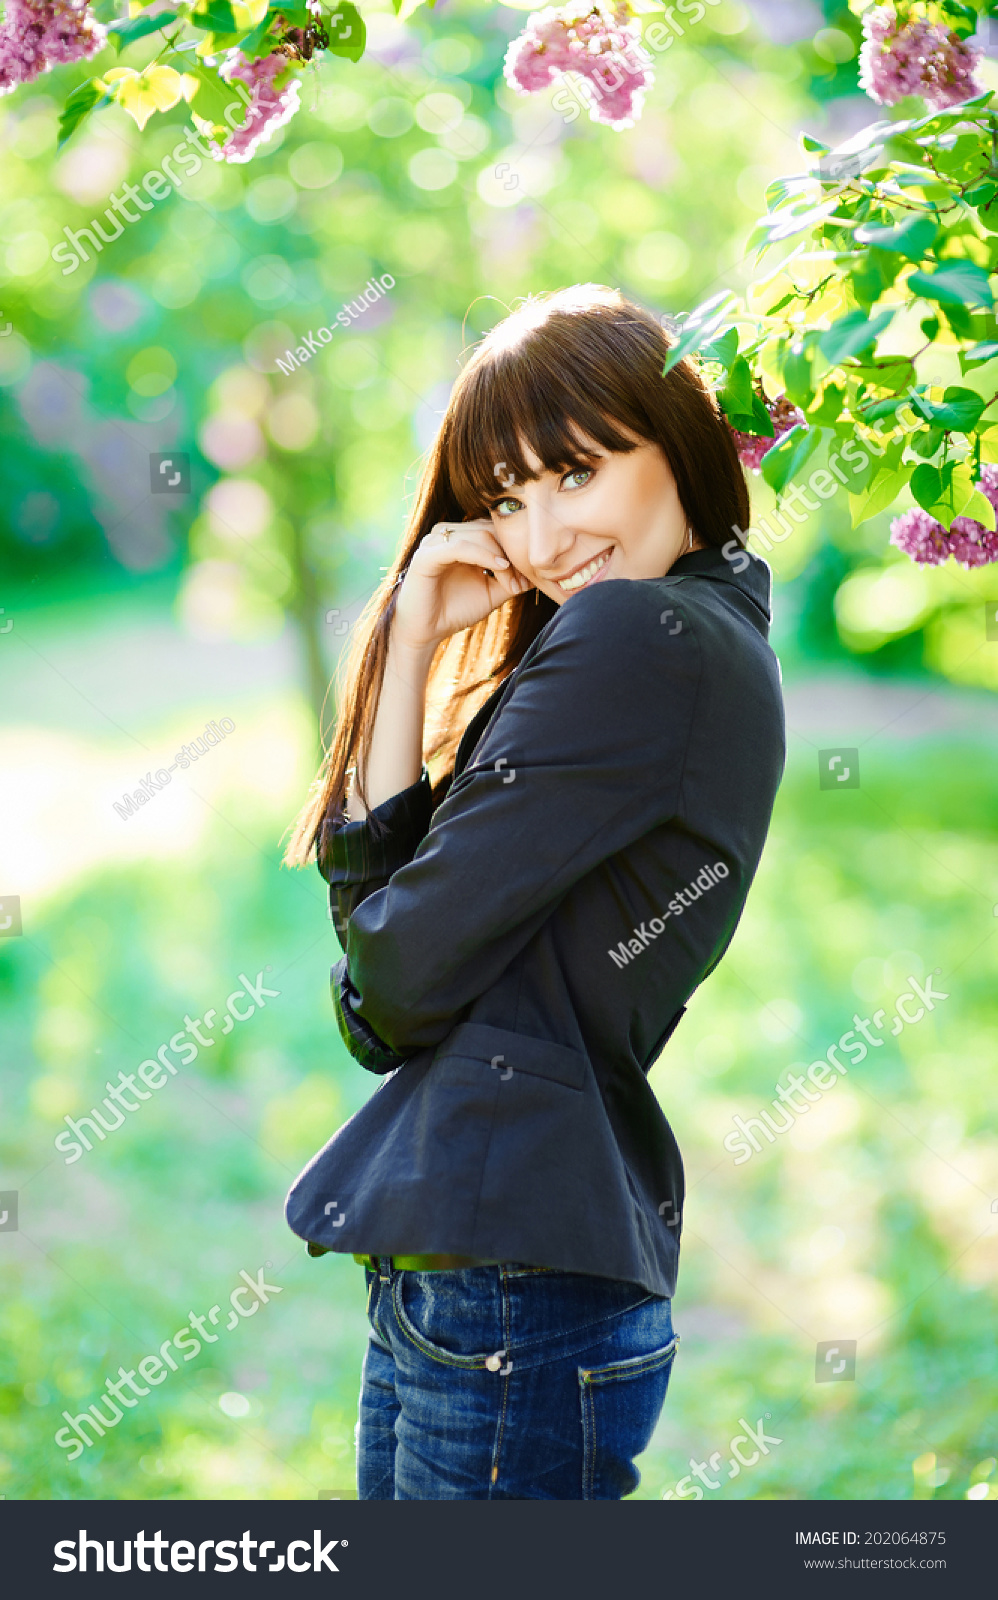 Beauty Sunshine Girl. Happy Woman Smiling Stock Photo ...